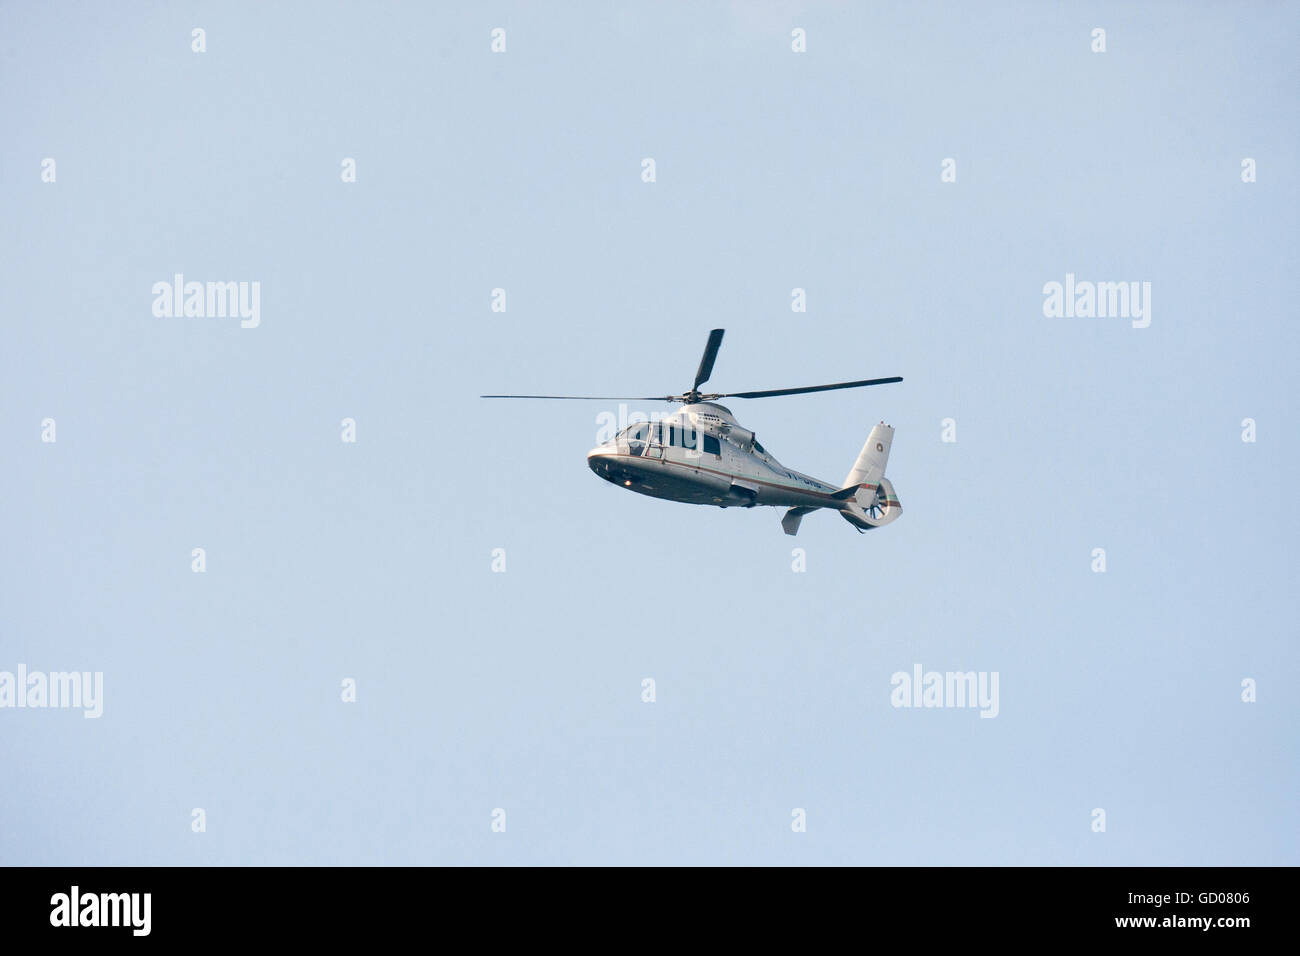 Relaince Petrochemicals helicopter - Stock Image